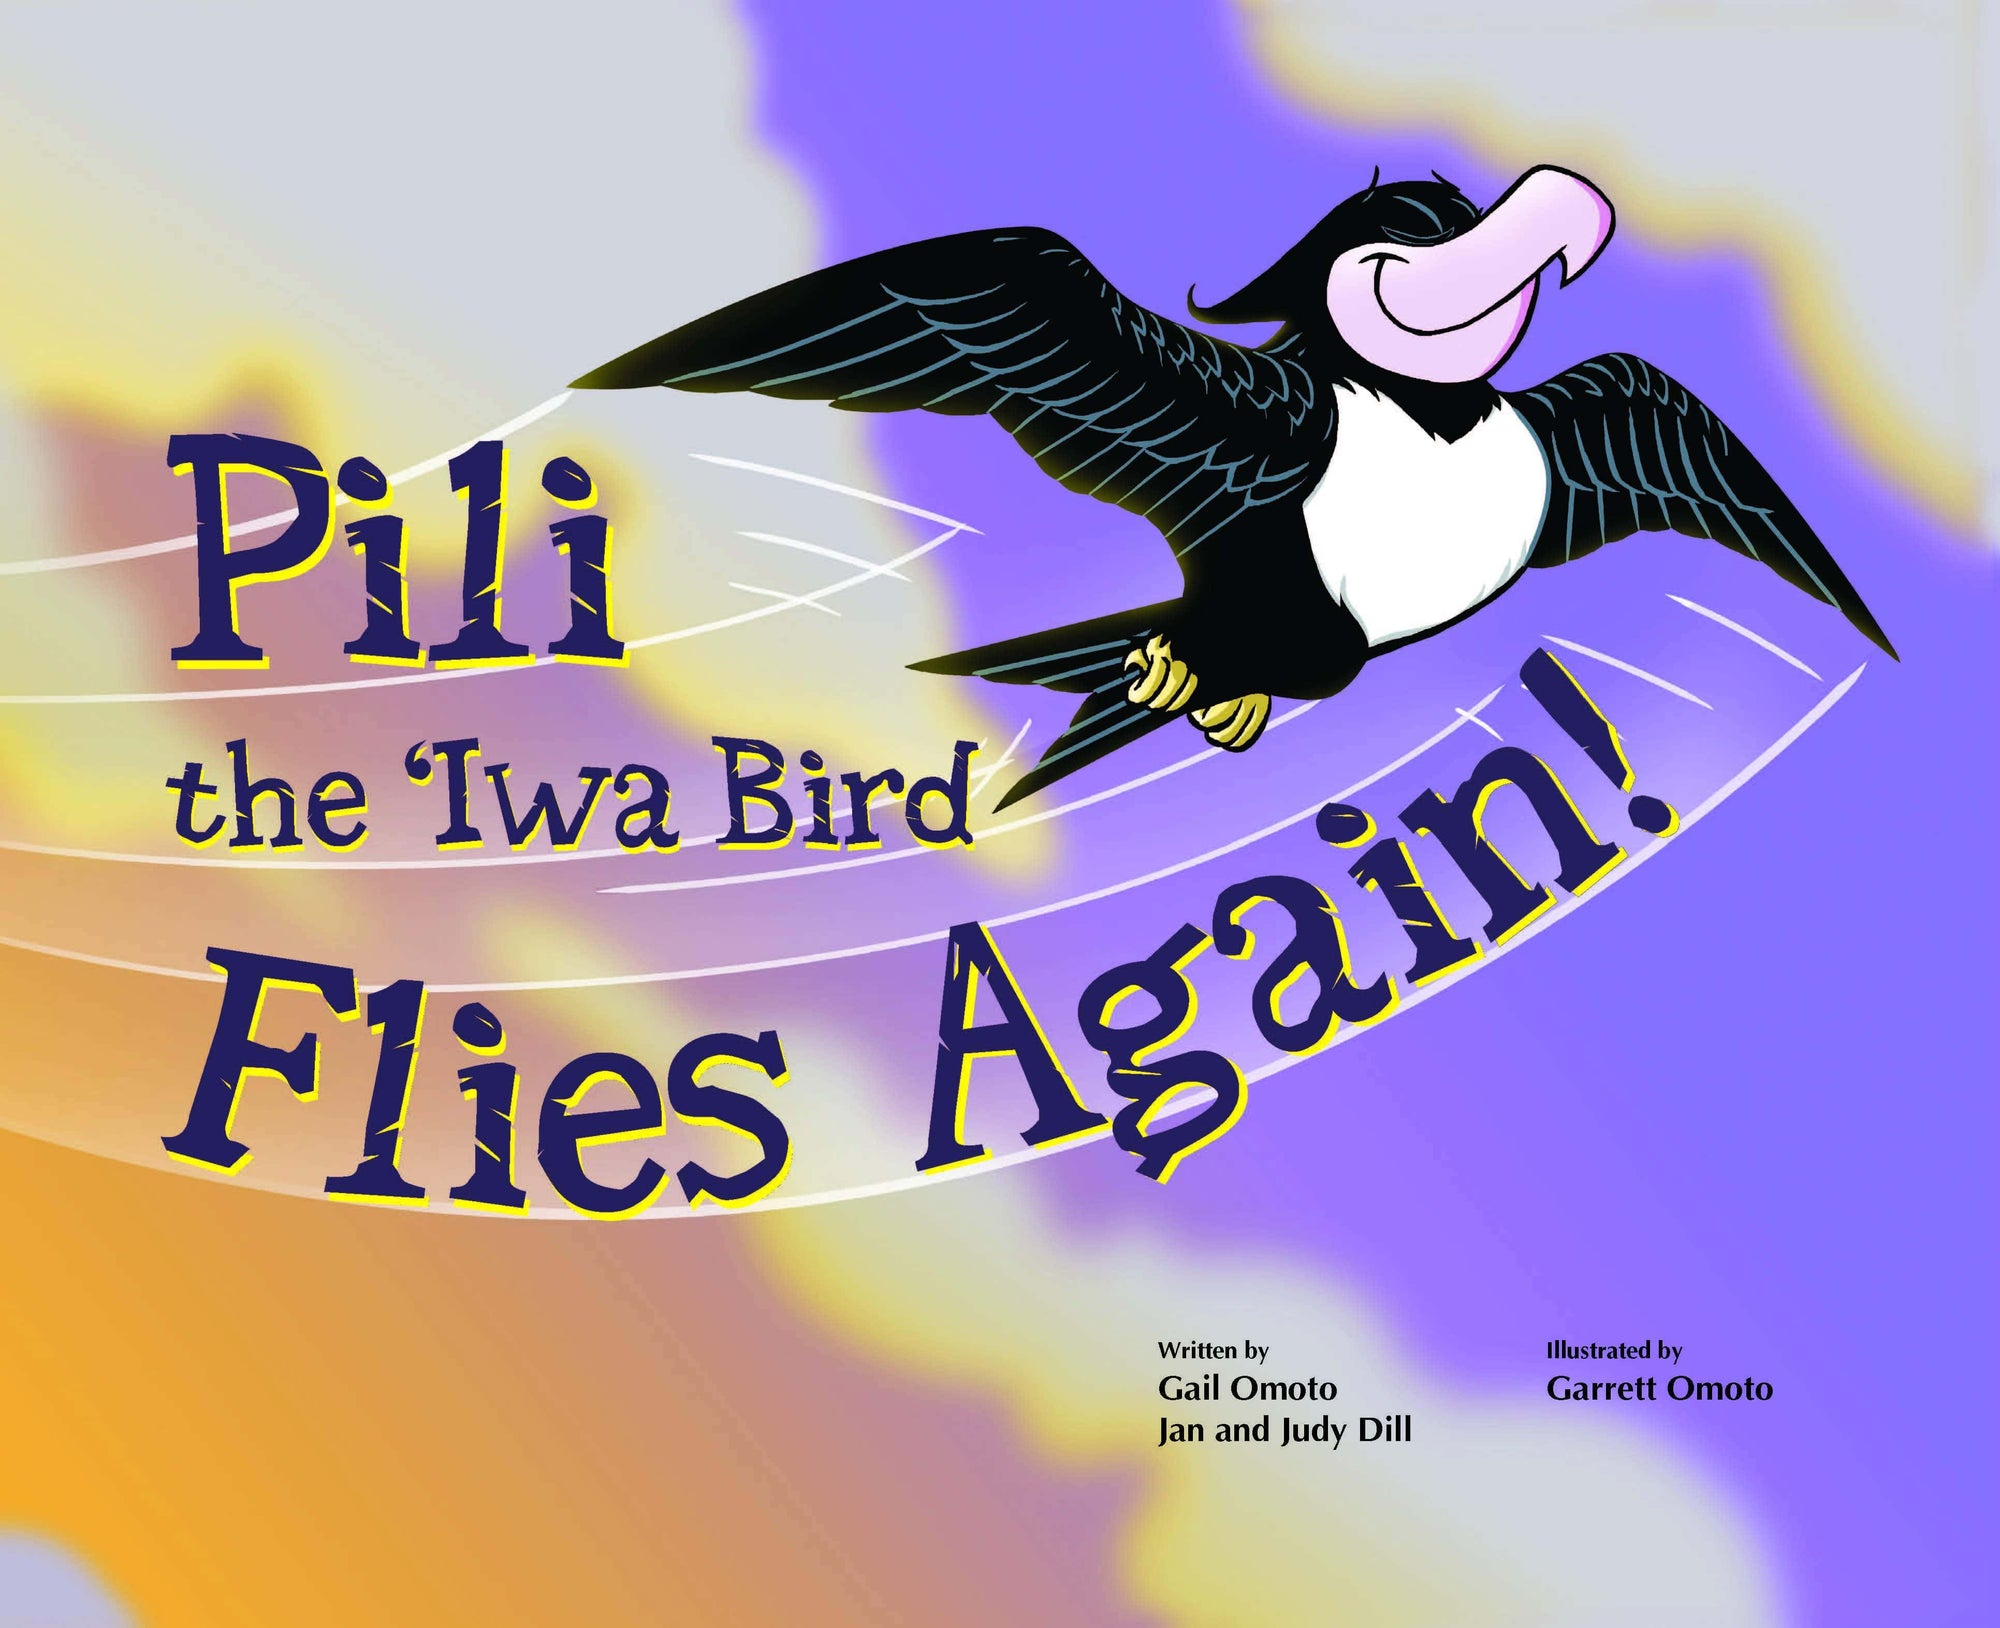 Pili the `Iwa Bird Flies Again!